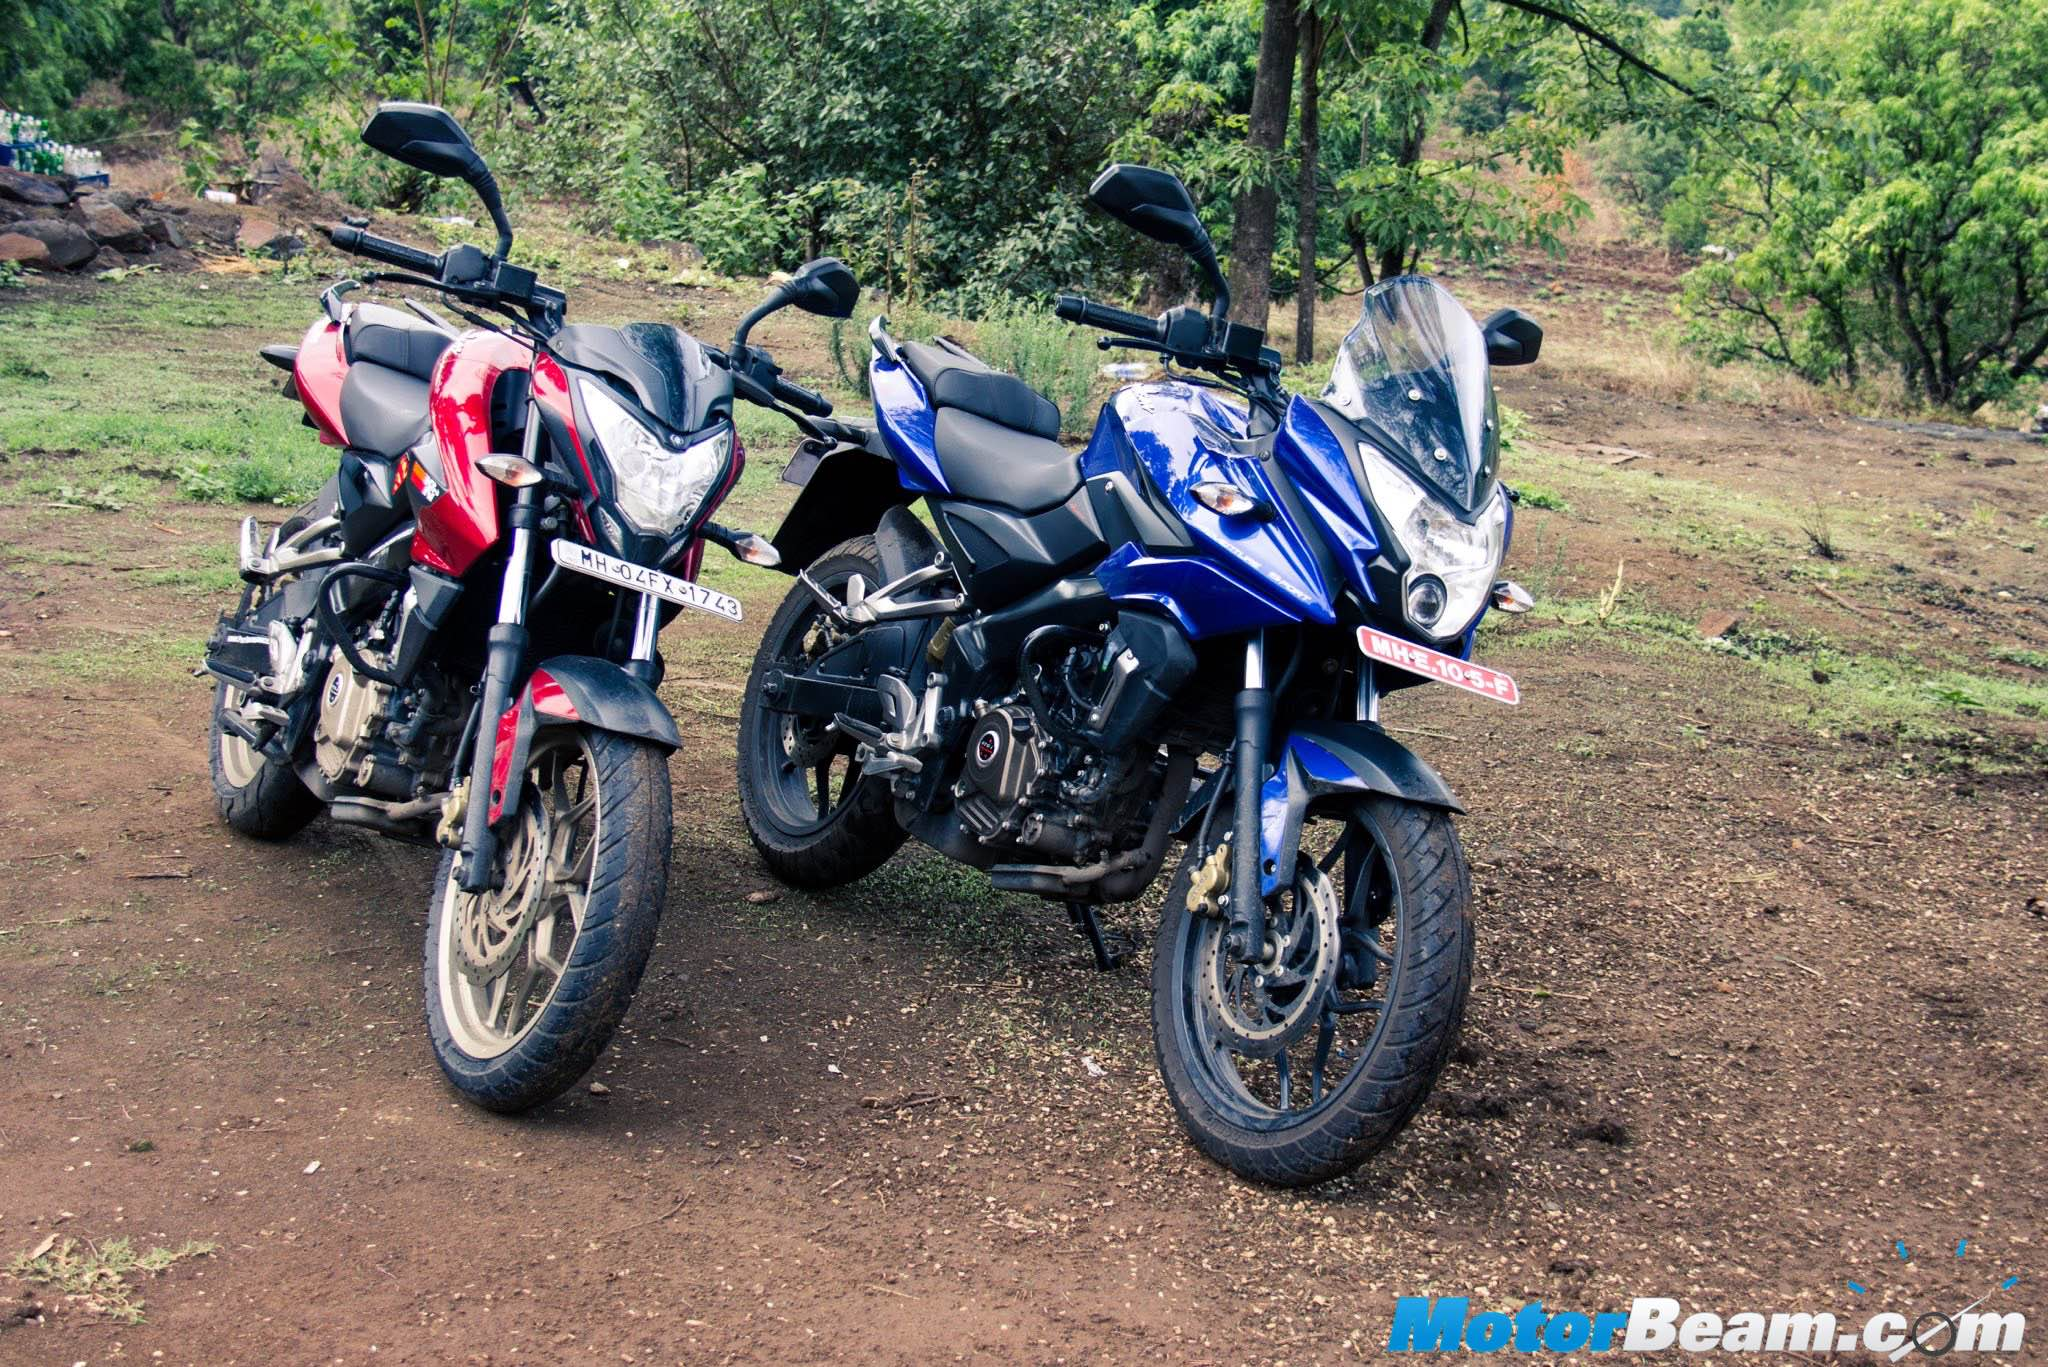 Pulsar AS 200 vs Pulsar 200 NS